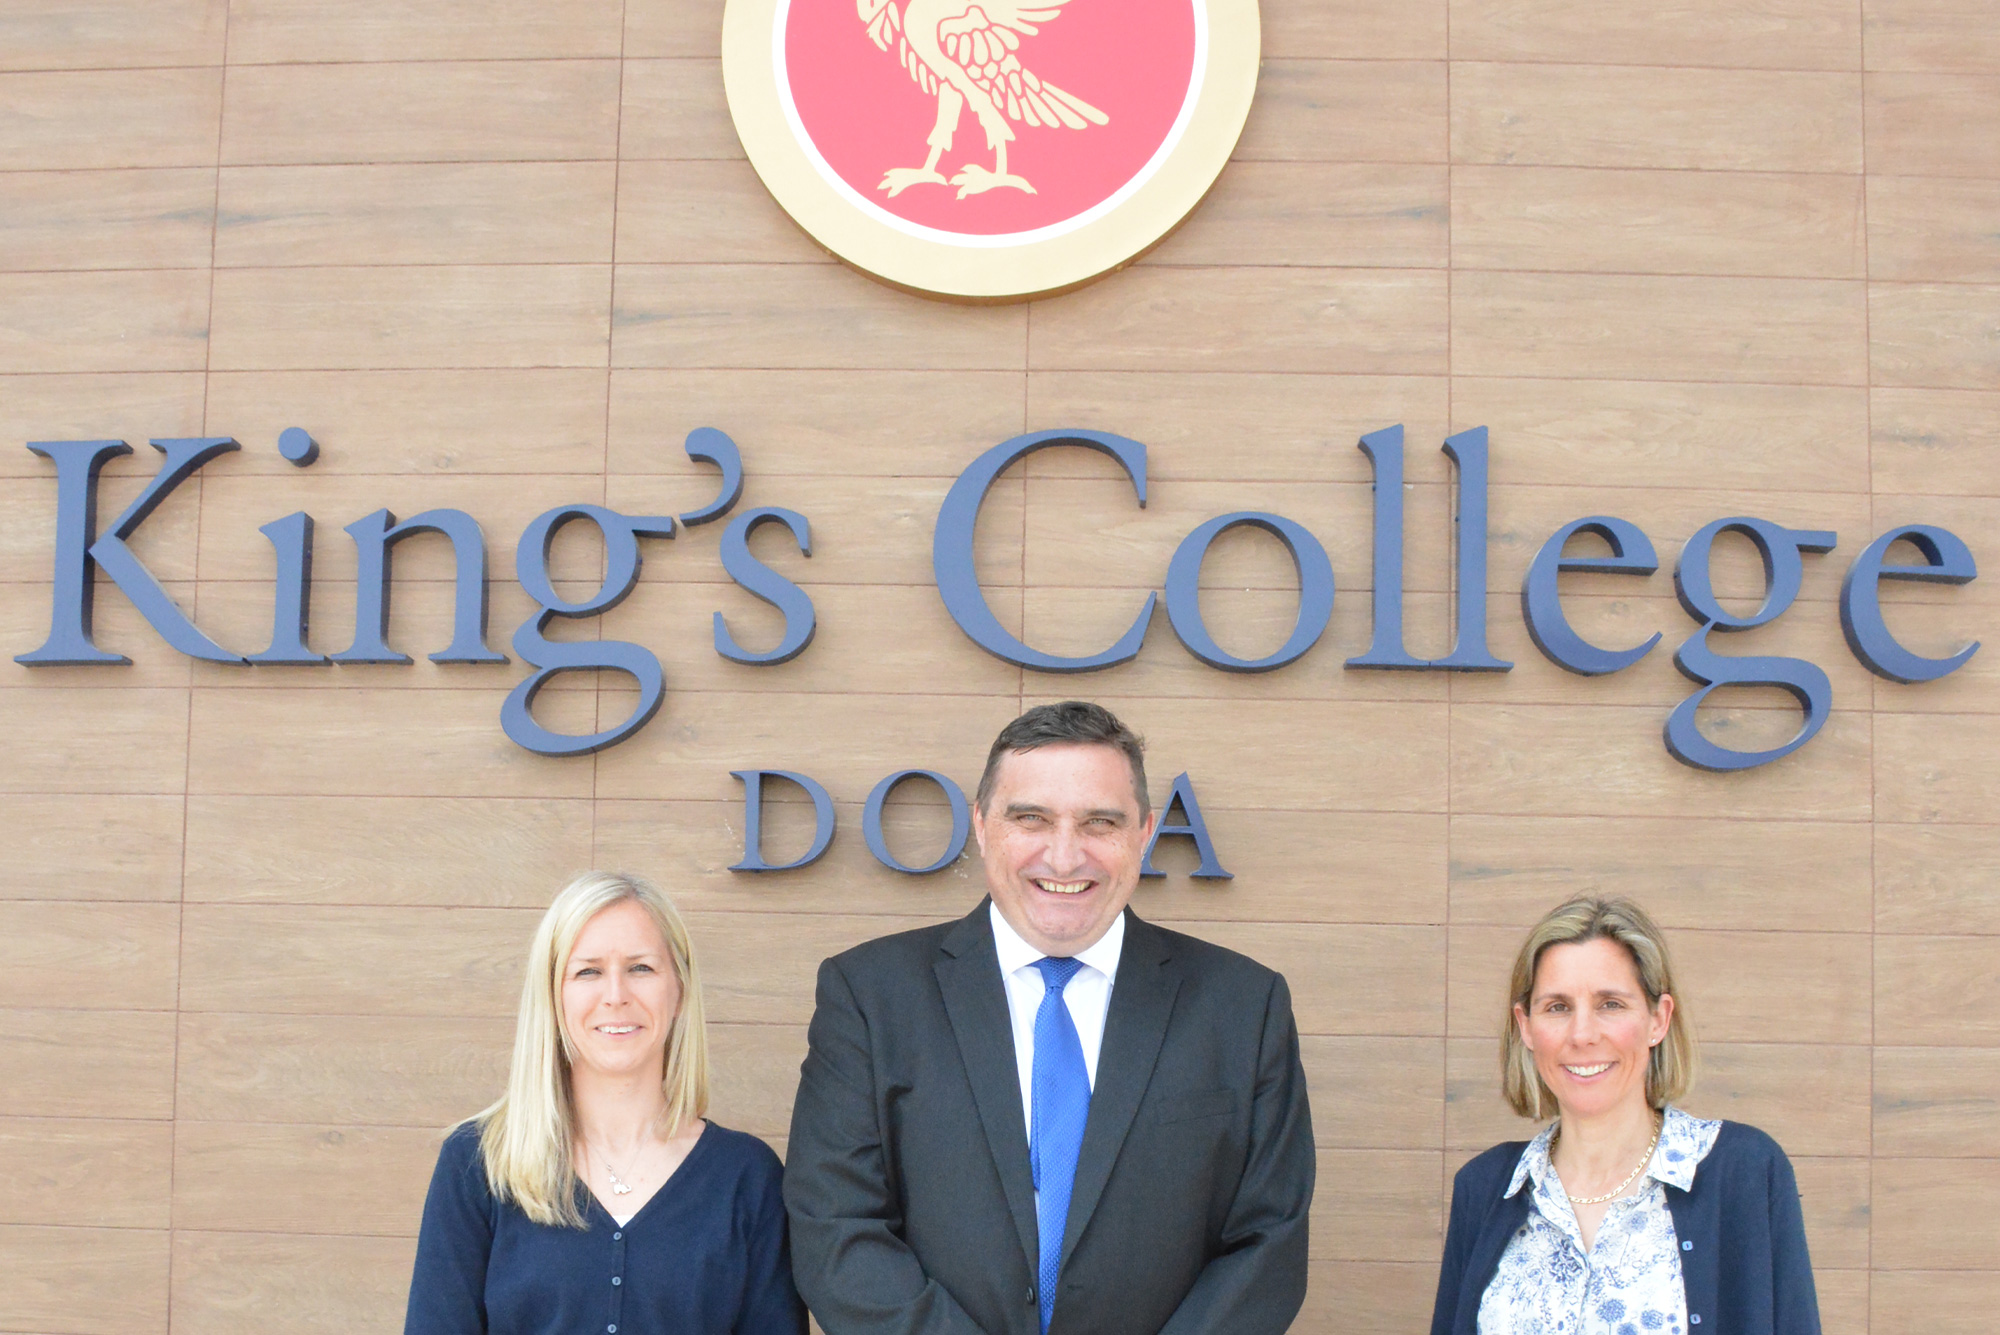 TauntonVisitors2019 - King's College UK Visit King's College Doha